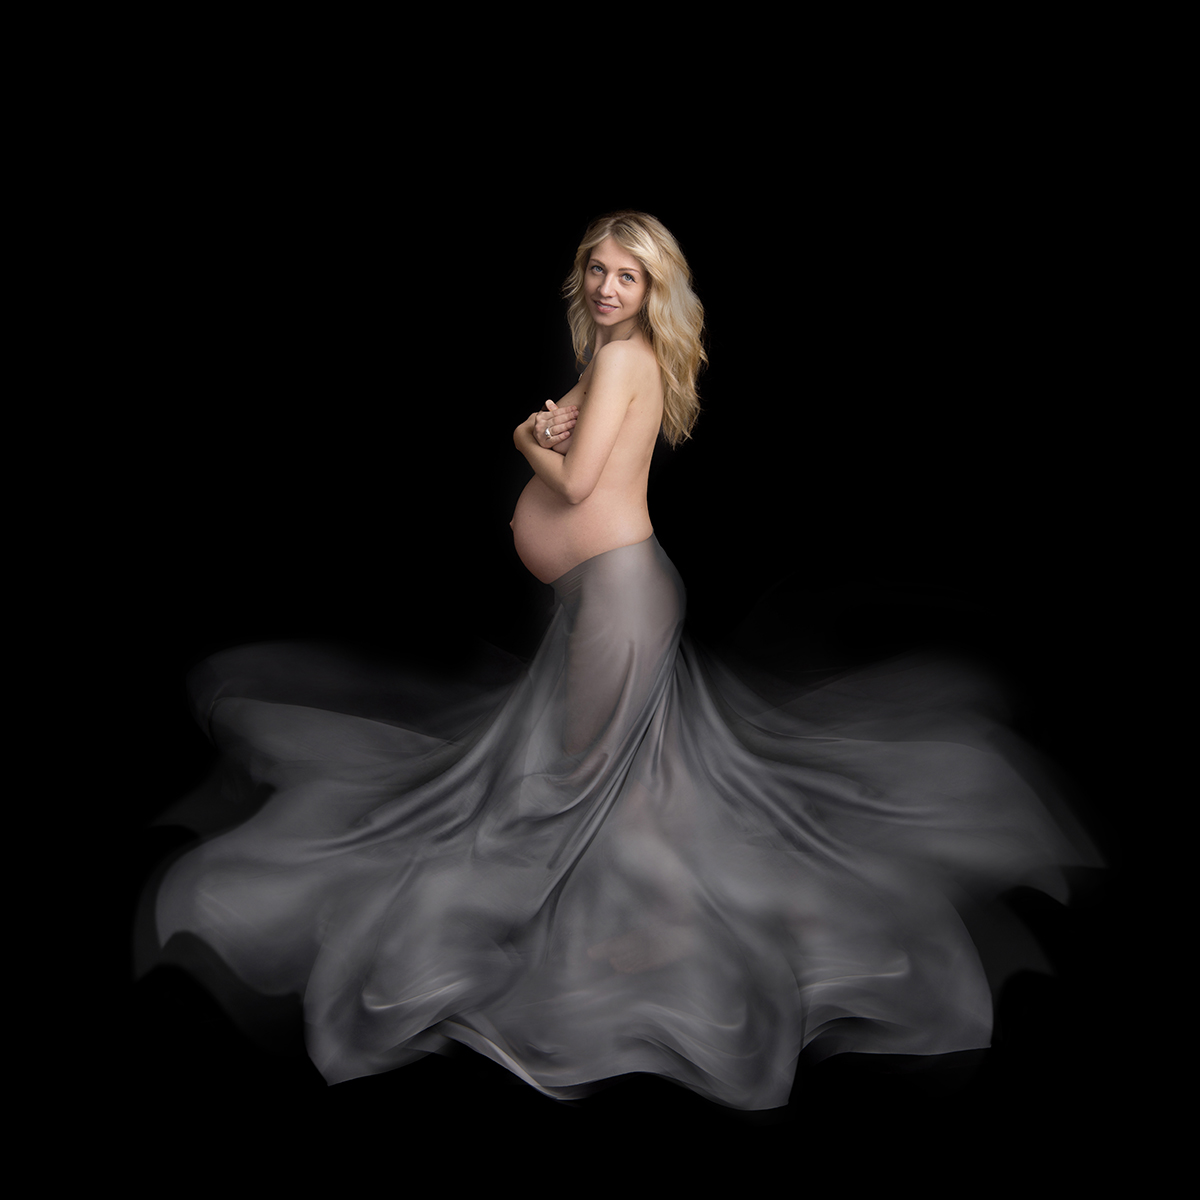 Semi nude image of a pregnant lady with long blond hair. She is wearing flowing fabric and the back ground is black.